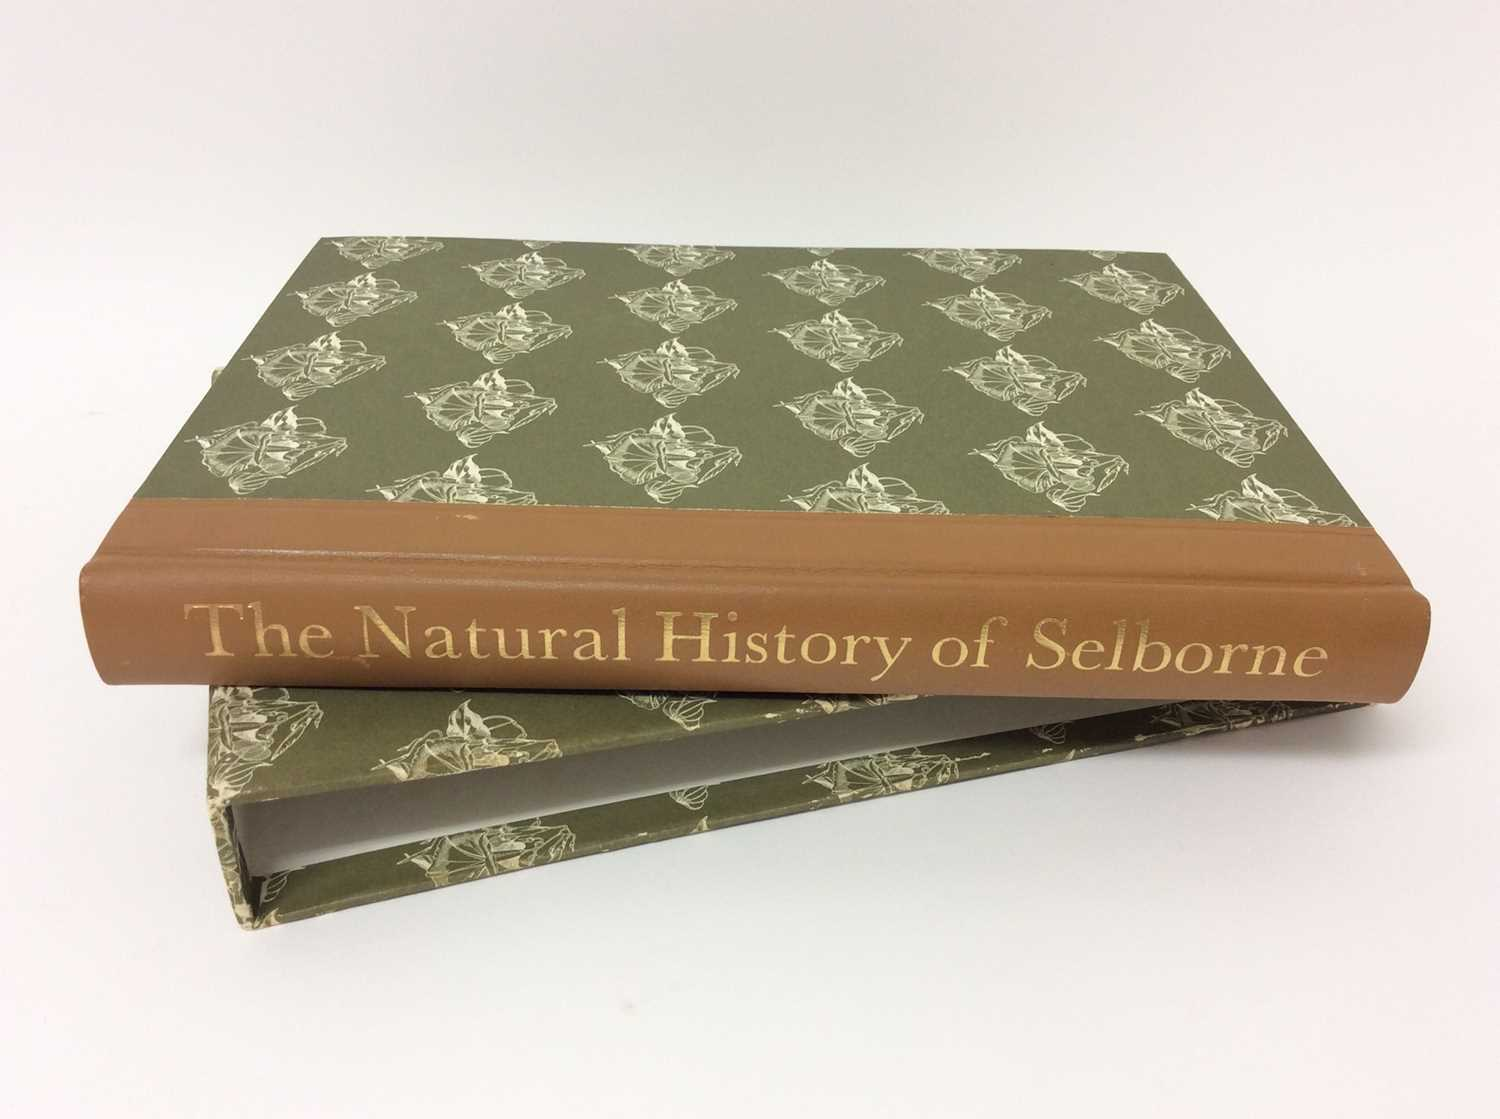 Lot 5 - The Natural History of Selborne, illustrated by John Nash